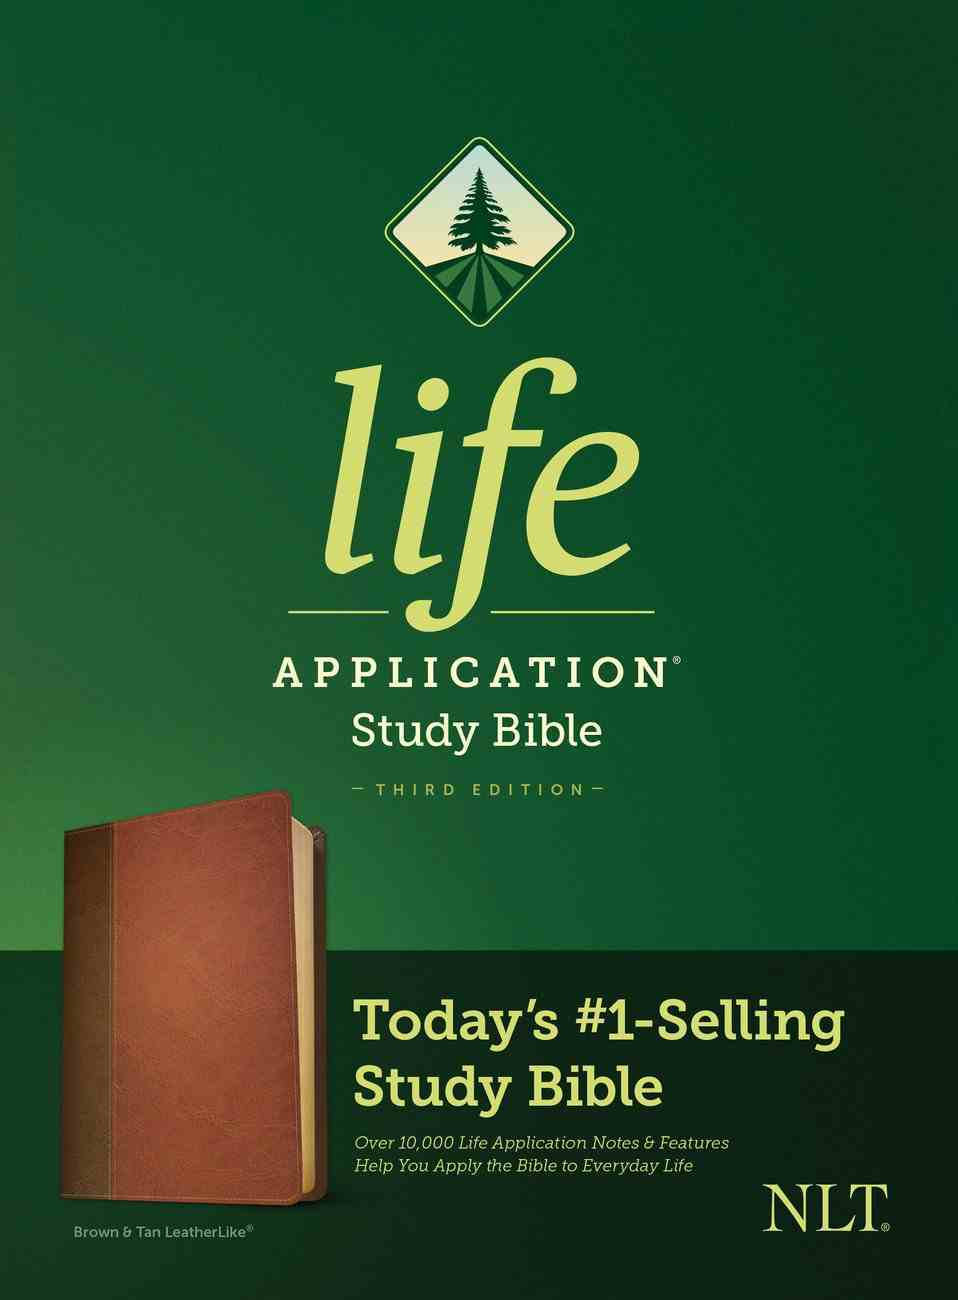 NLT Life Application Study Bible 3rd Edition Brown/Tan (Black Letter Edition) Imitation Leather